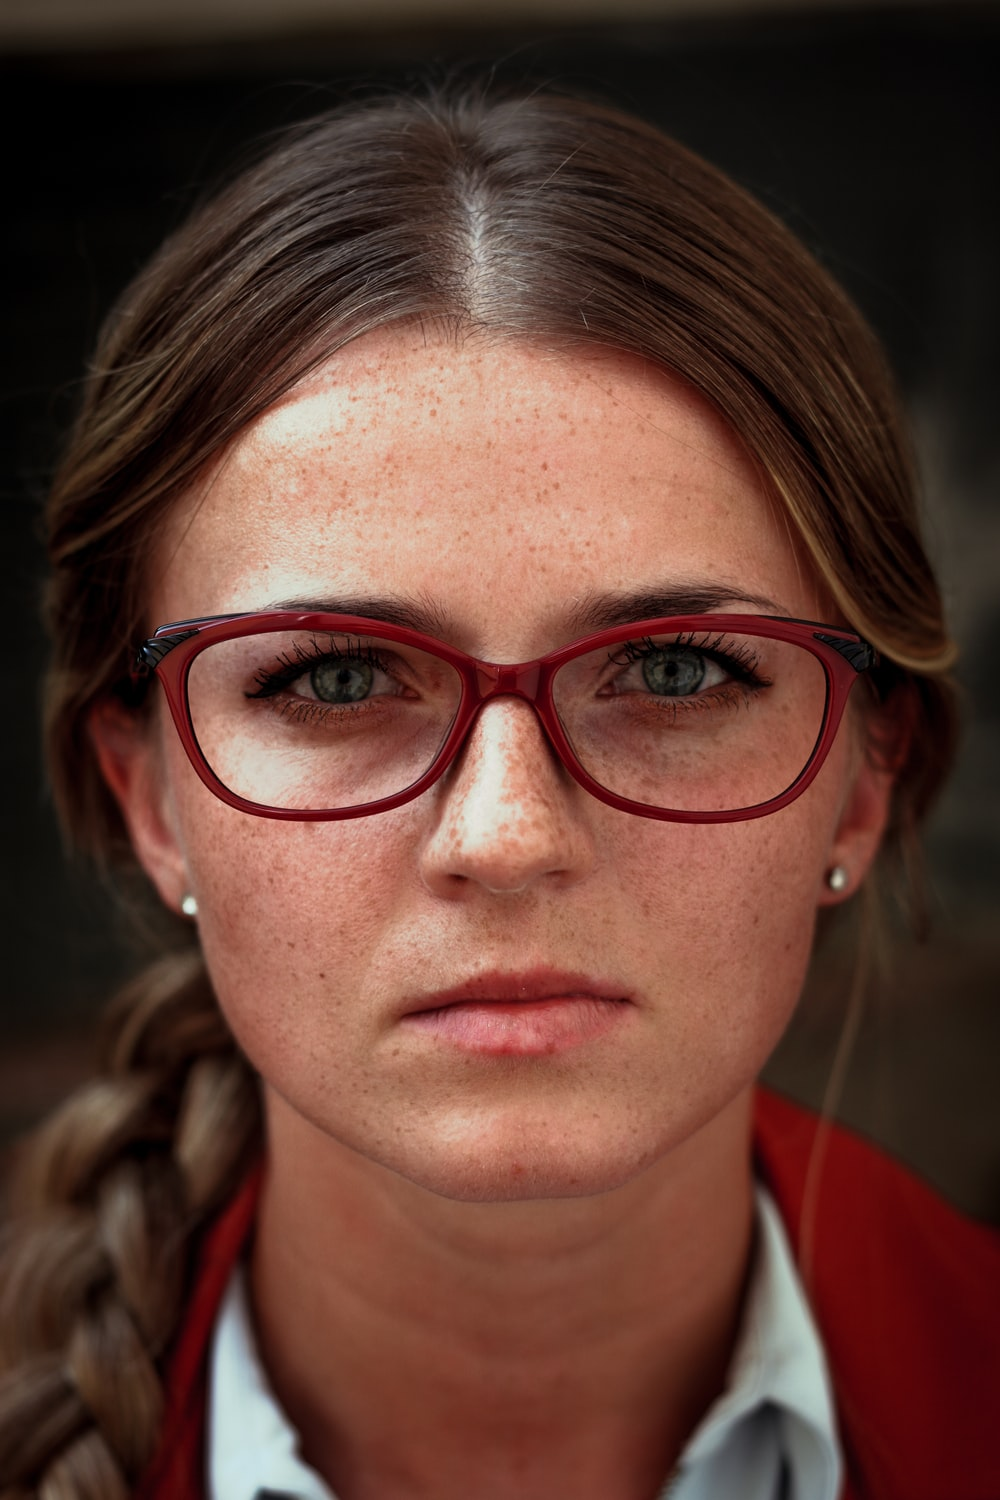 Woman Wearing Eyeglasses With Red Frames Photo Free Glasses Image On Unsplash